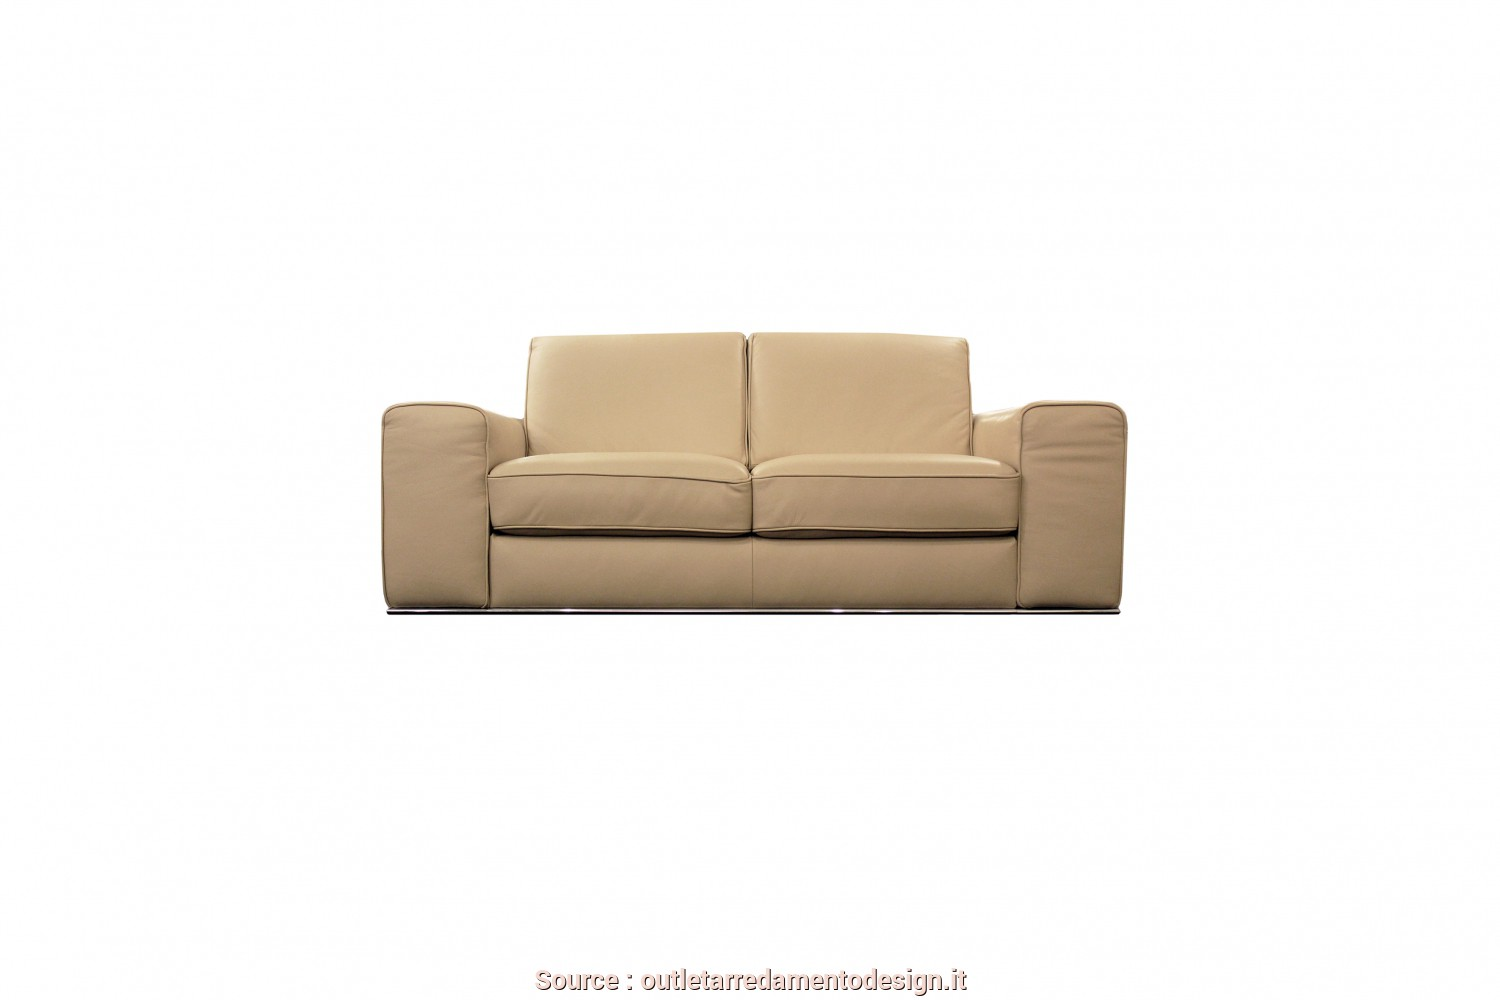 Divano Doimo Outlet, Bello Divano-Vincent-Pelle-Beige Soft Touch-Doimo Sofas-Arredo-Outlet-Design